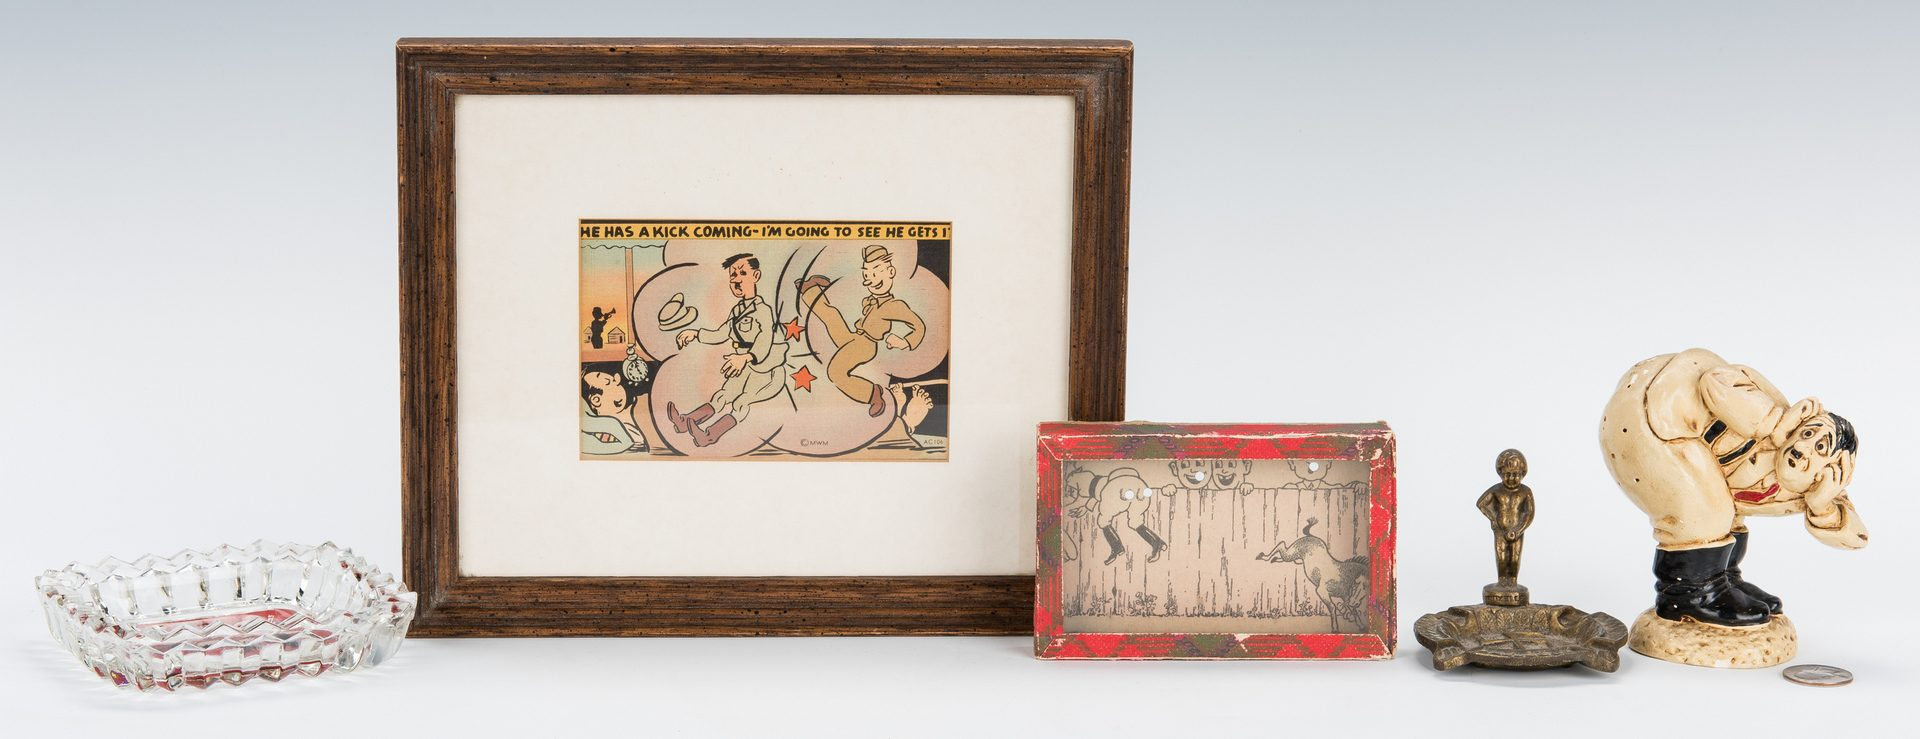 Lot 390: WWII Anti Hitler Collectibles incl. Ashtrays, Pin Cushion, Cartoon